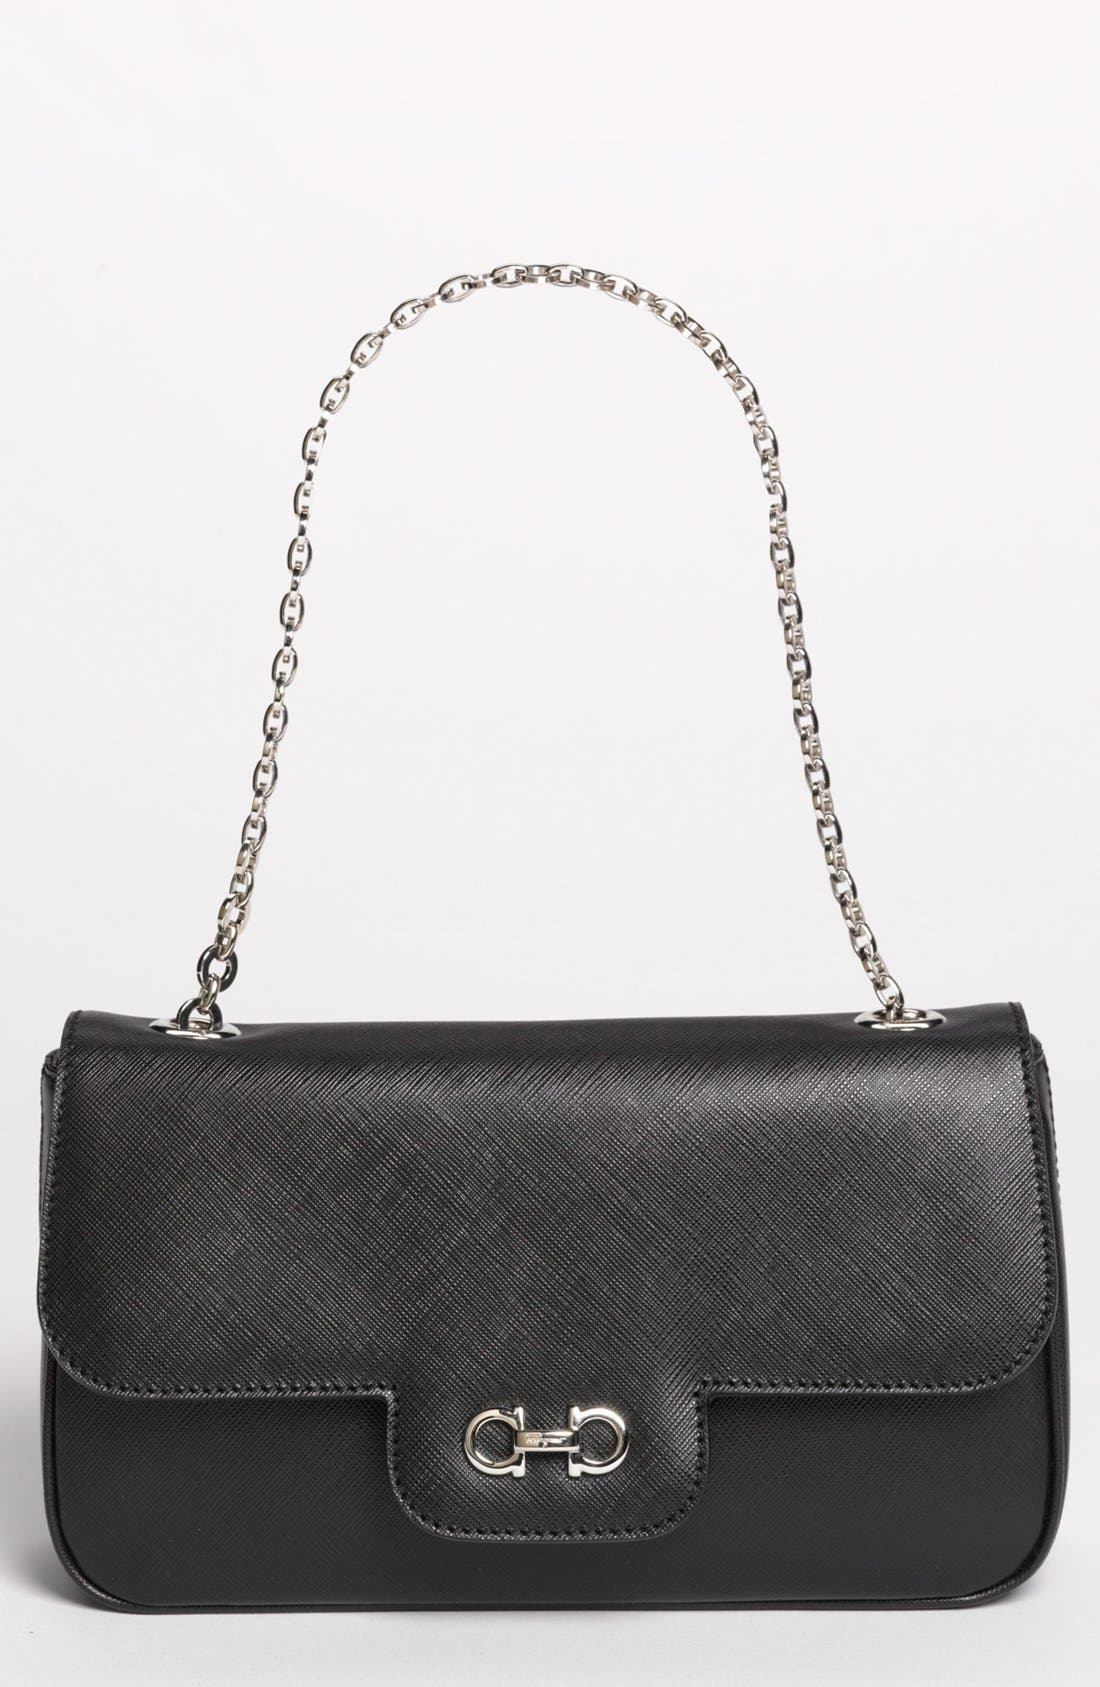 Alternate Image 1 Selected - Salvatore Ferragamo 'Luciana' Leather Shoulder Bag